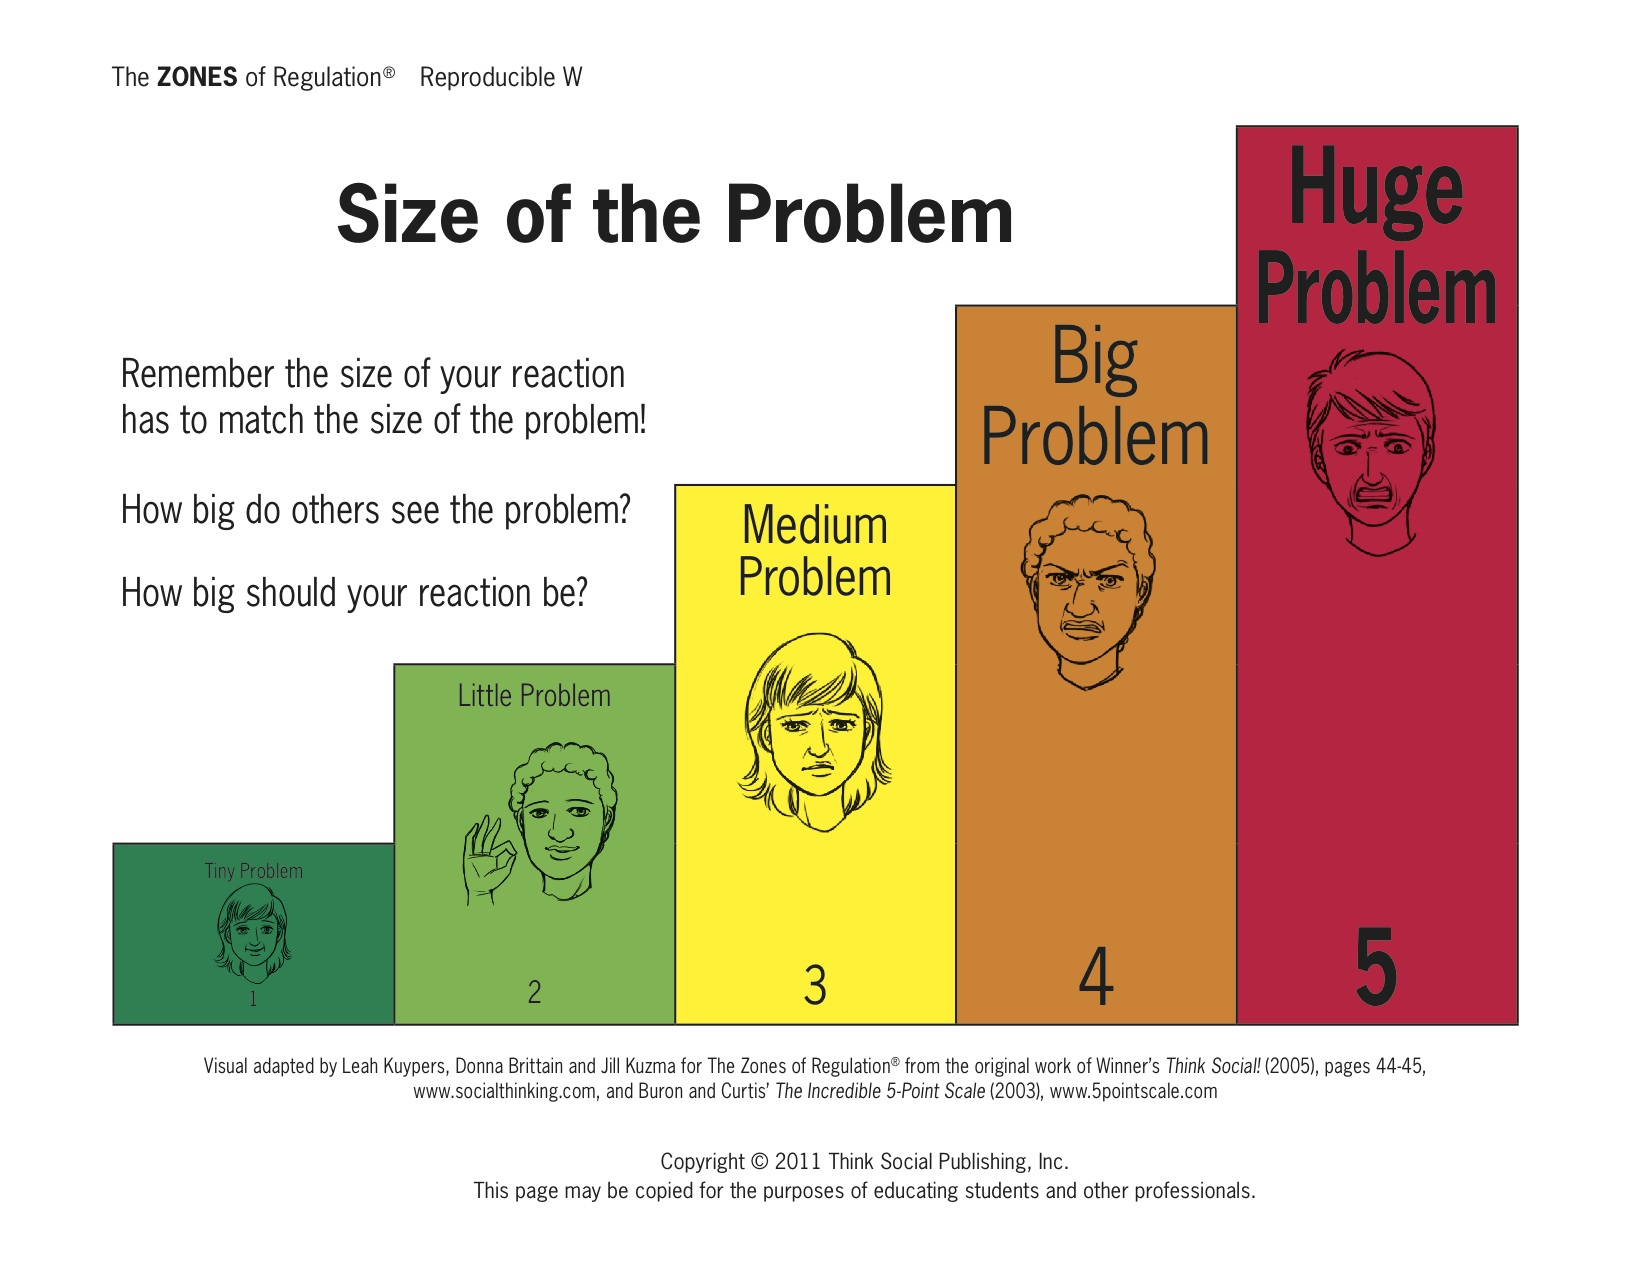 The Zones of Regulation: Size of the Problem Thinking